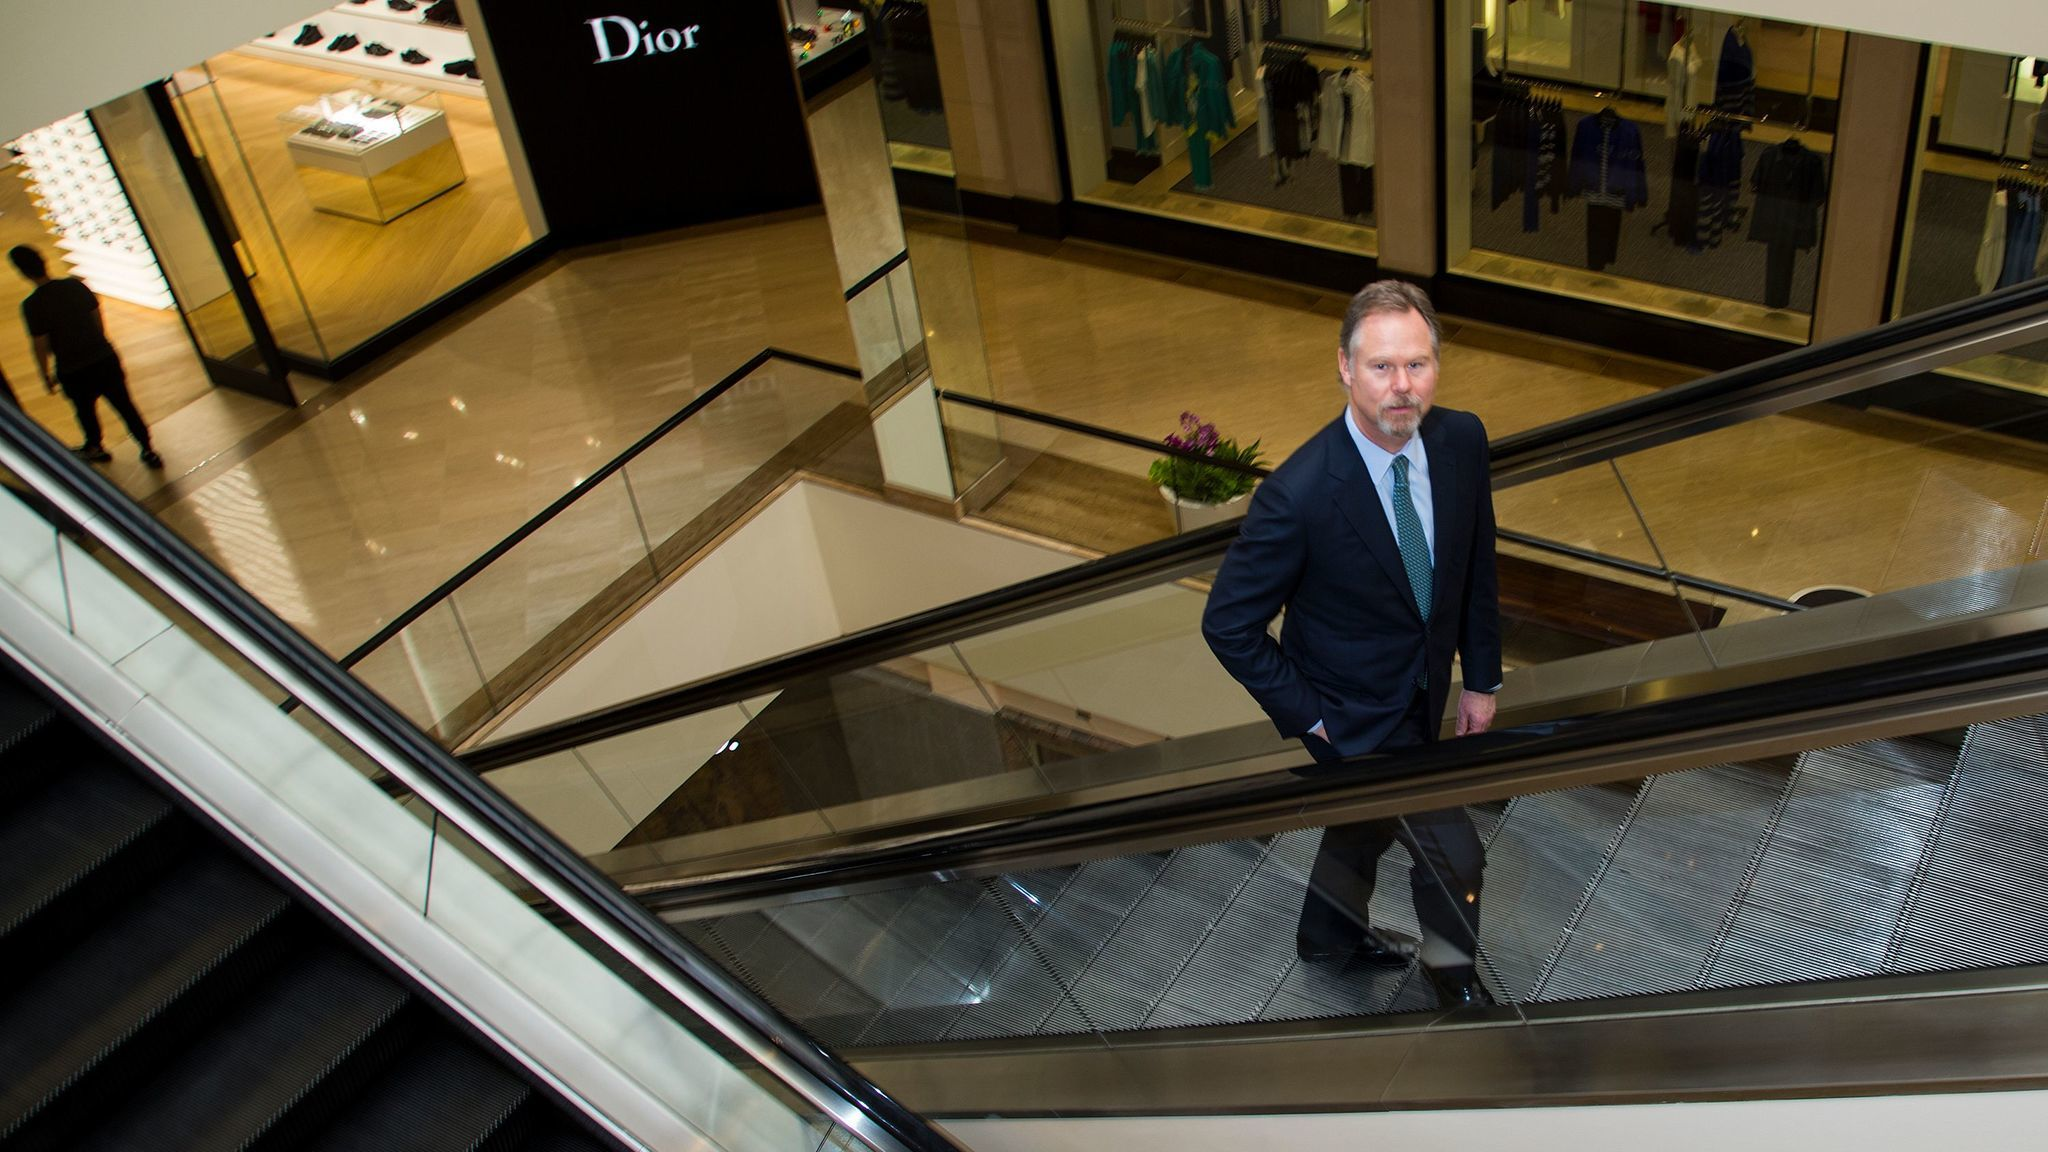 """South Coast Plaza executive and partner Anton Segerstrom says the opening of the André Courrèges boutique in 1975 was a """"great leap forward"""" for the center."""